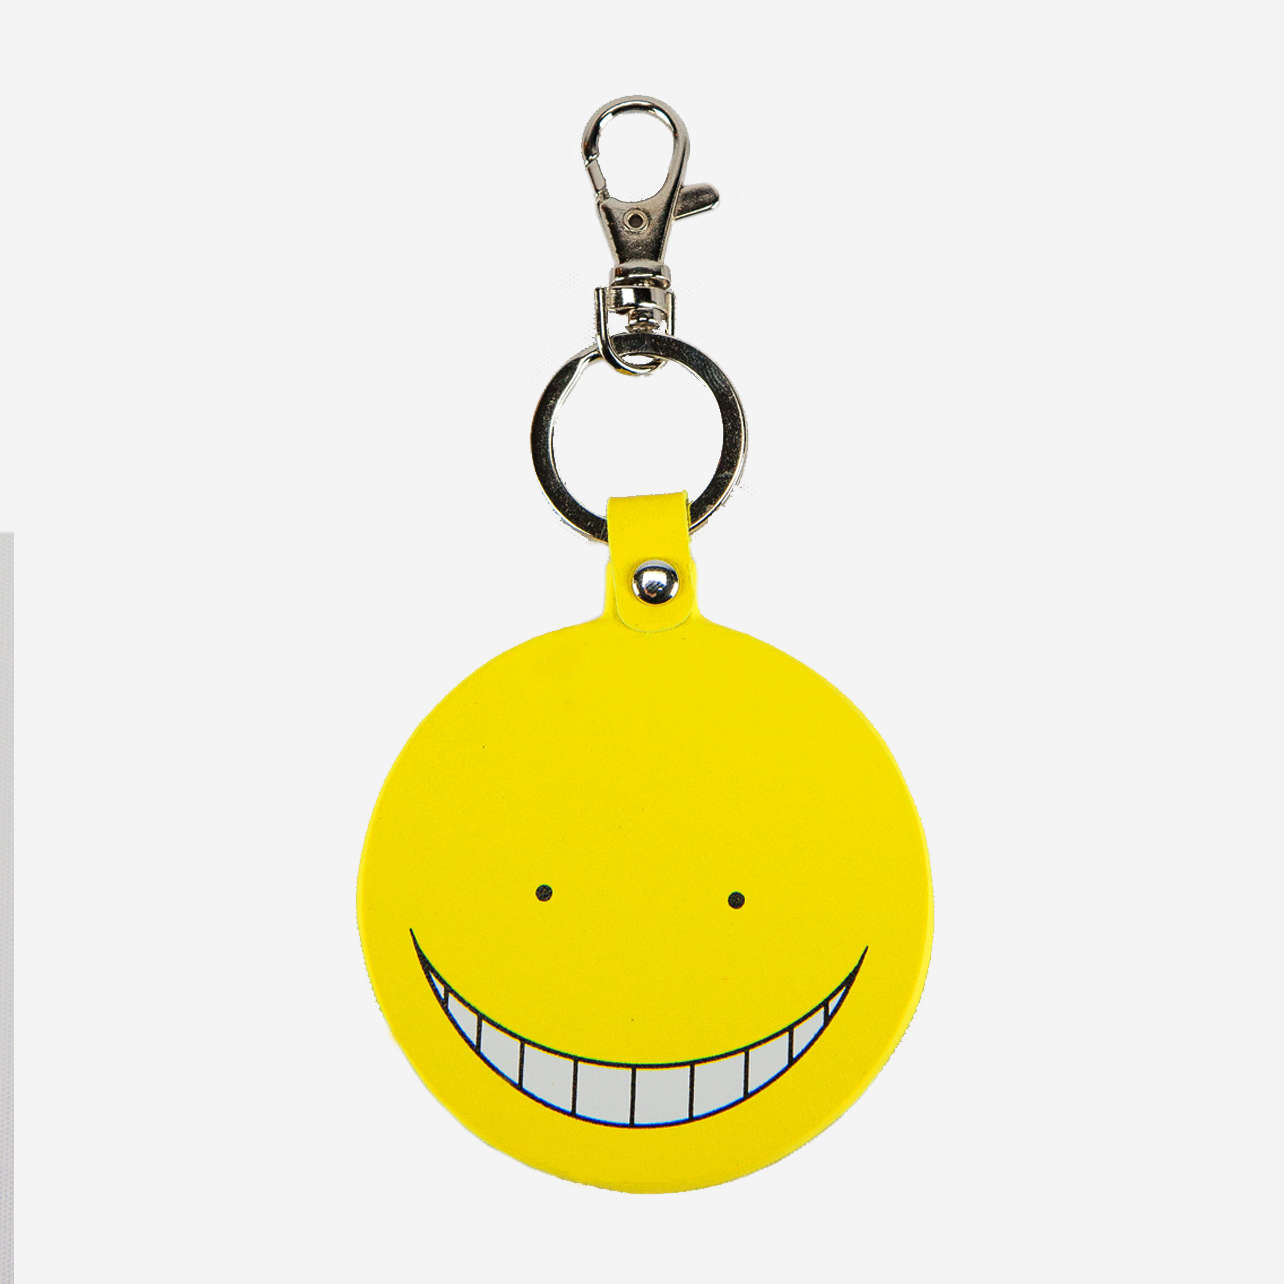 Koro Sensei Keychain accessories